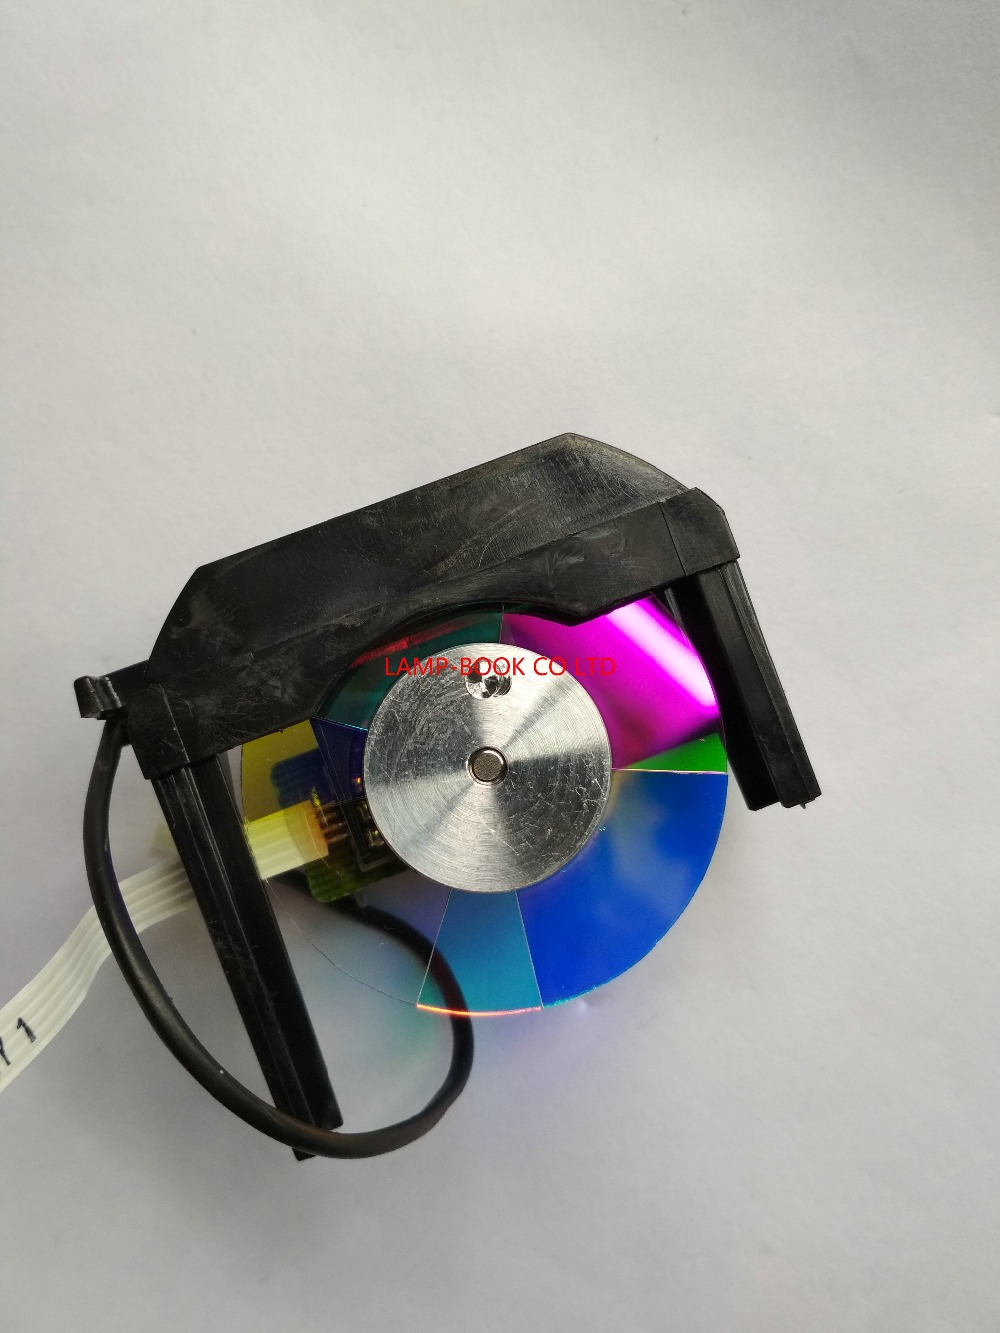 NEW ORIGINAL COLOR WHEEL FOR BENQ TX5307 TS504 MX520 BPX5630 BX5630 EX622D PROJECTOR 6E 14801 002